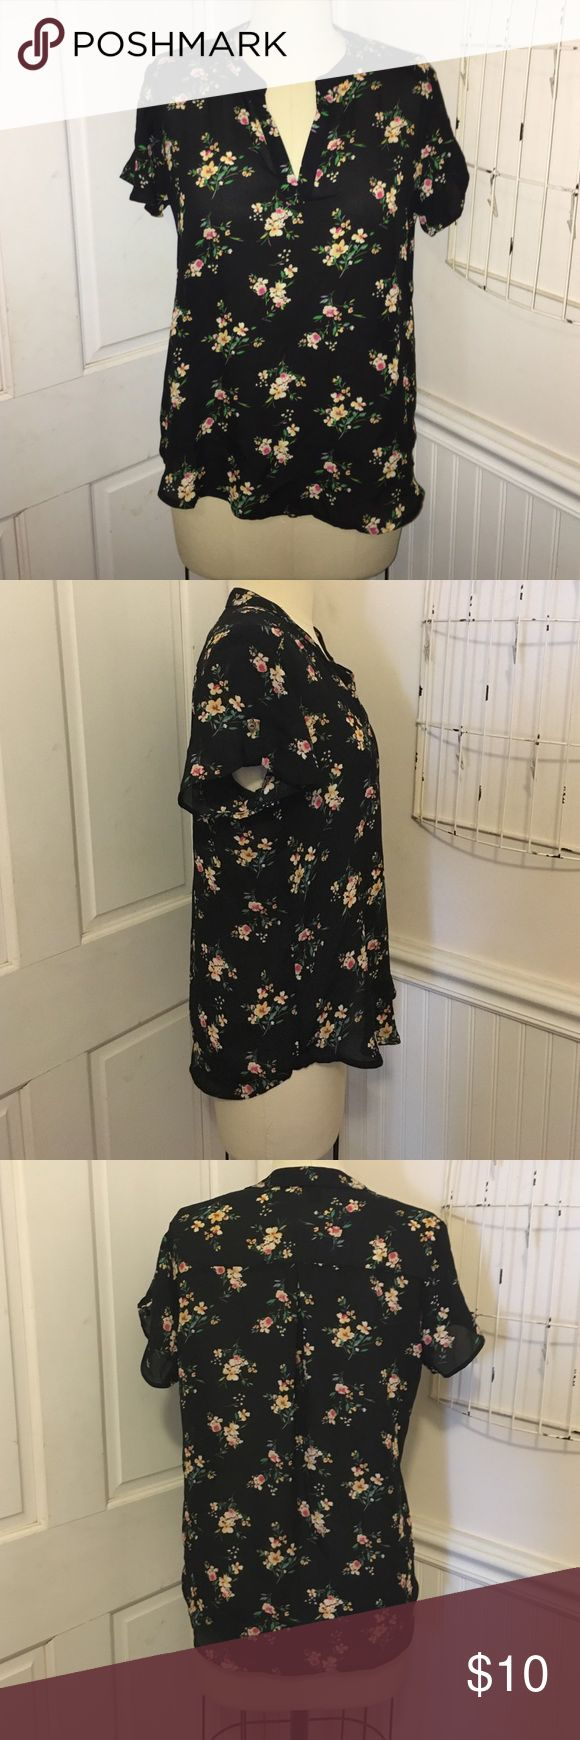 Floral short sleeve top size M This semi sheer top from forever 21 is a size M. Never worn with tags. 100% poly. Black grounded print with flowers. Forever 21 Tops Blouses